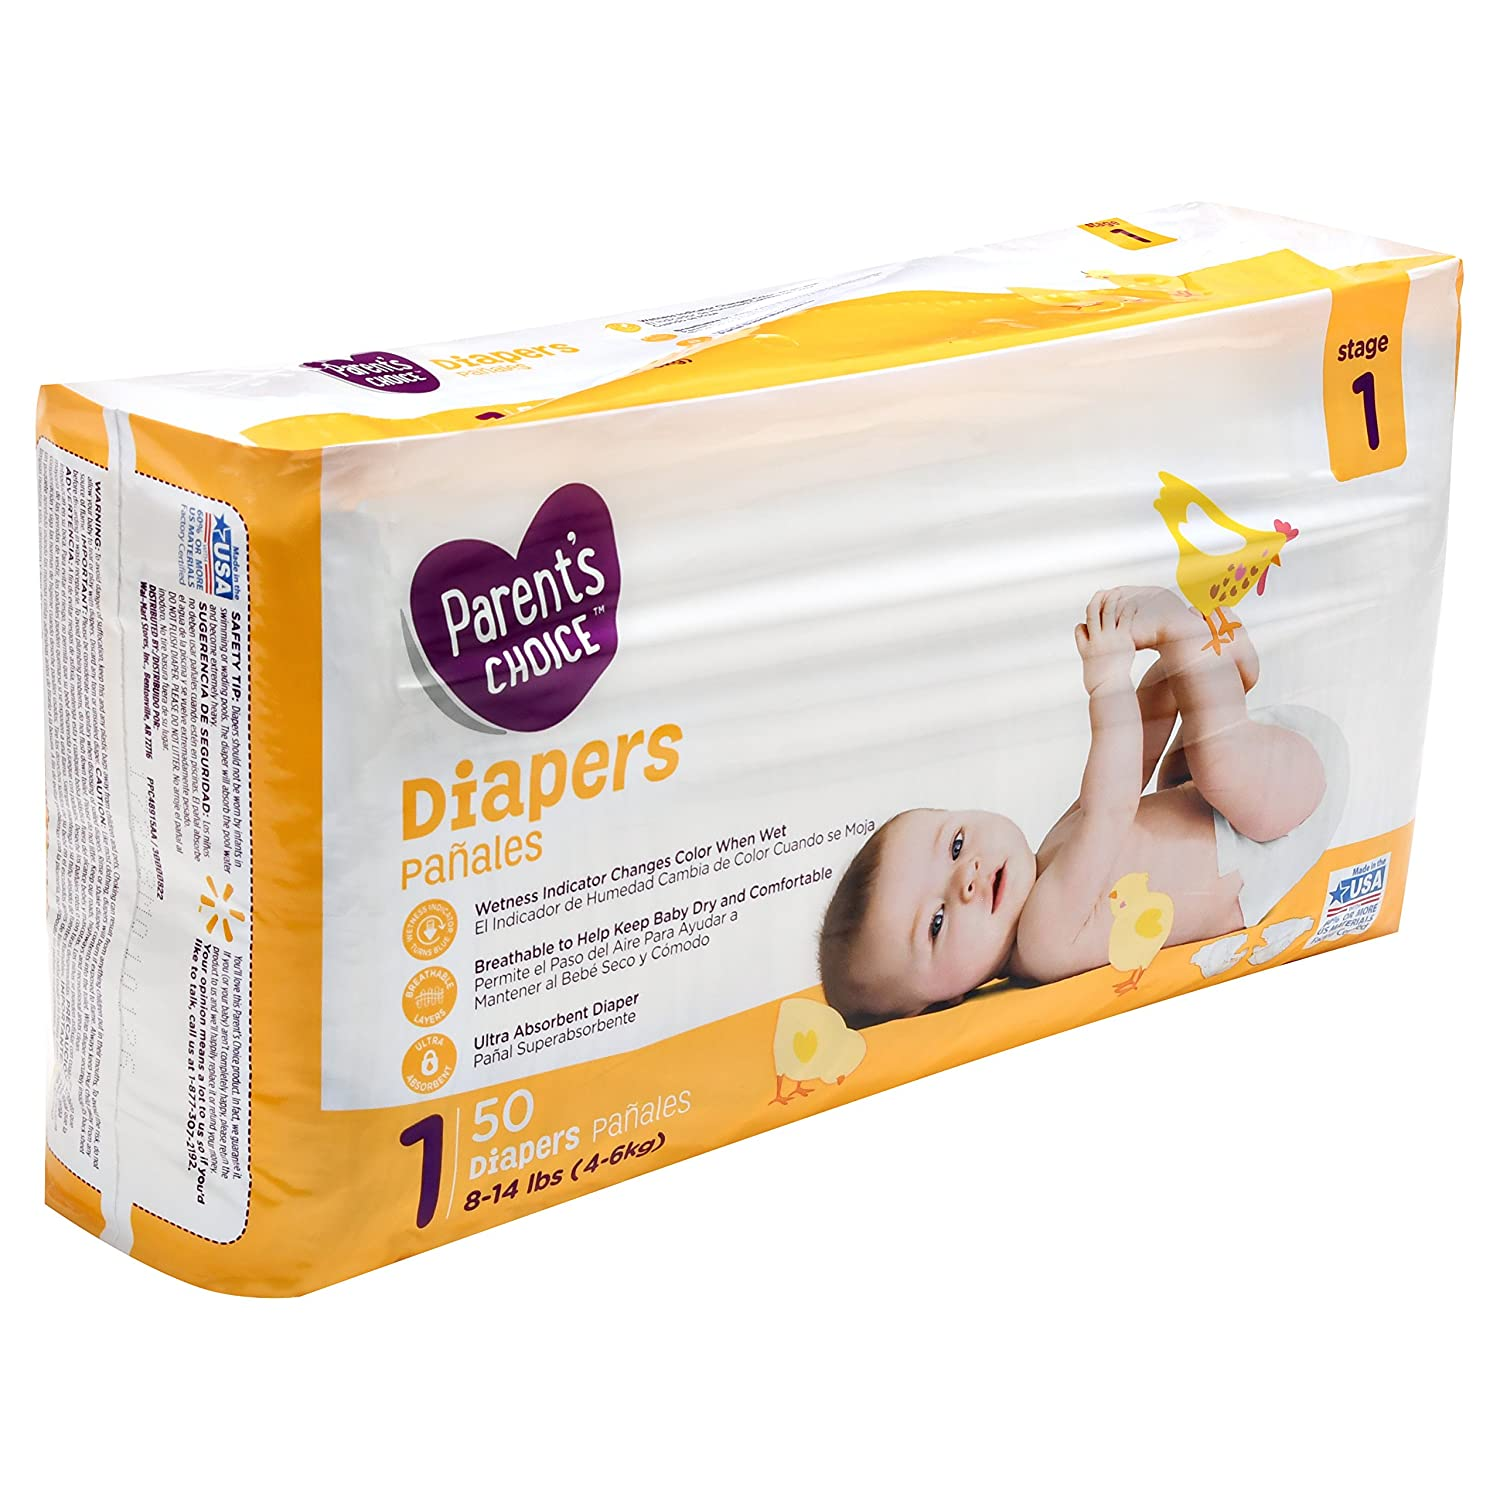 Amazon.com: Branded Parents Choice Diapers, Size 1, 50 Diapers , Weight 8-14lbs - Branded Diapers with fast delivery (Soft and Comfortable for Babies): ...